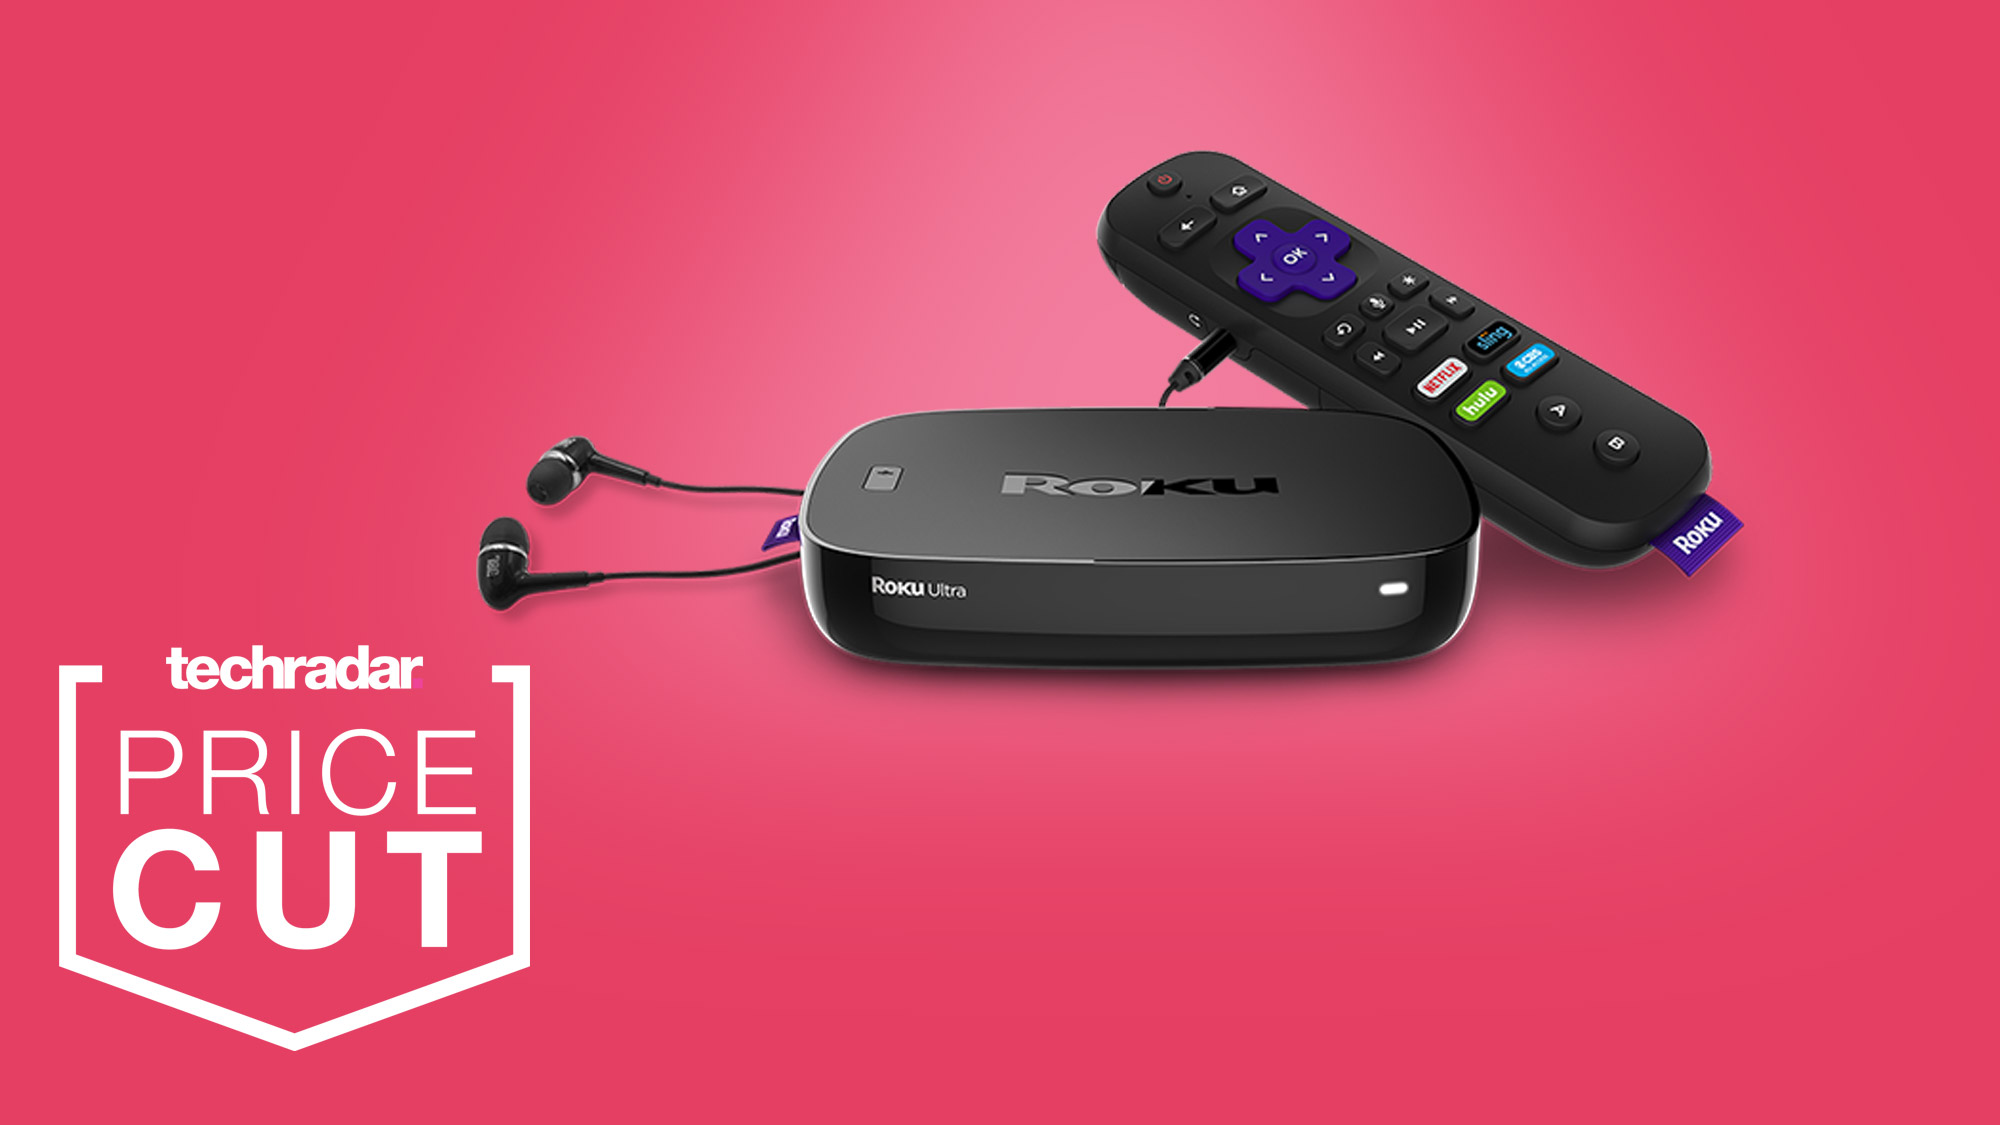 Roku price cut at Walmart: deals on the Roku Ultra, Roku Stick+ and more